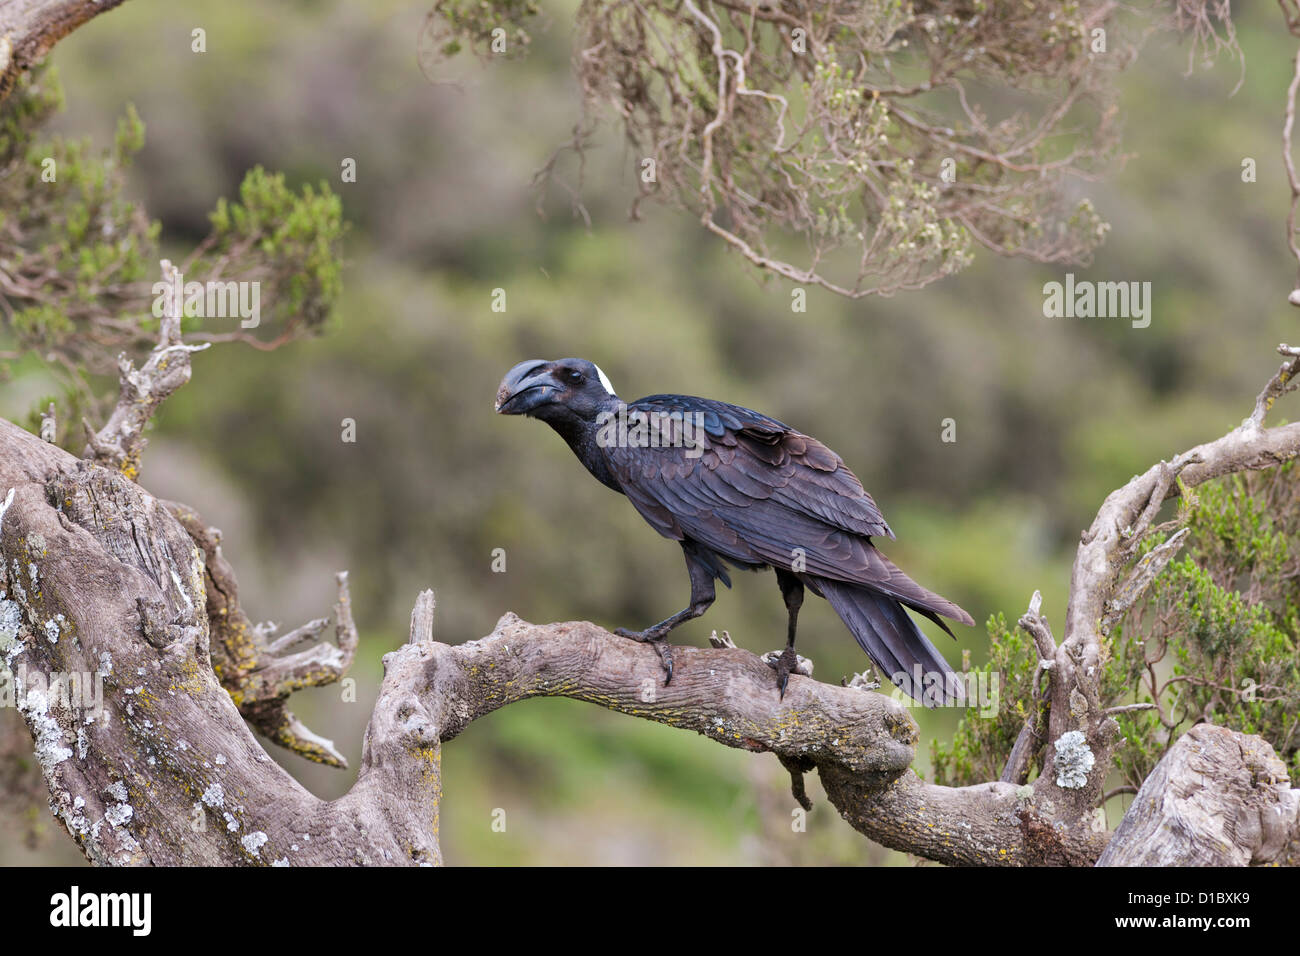 Thick-billed raven (Corvus crassirostris) in the highlands of Africa, East Africa, Ethiopia - Stock Image